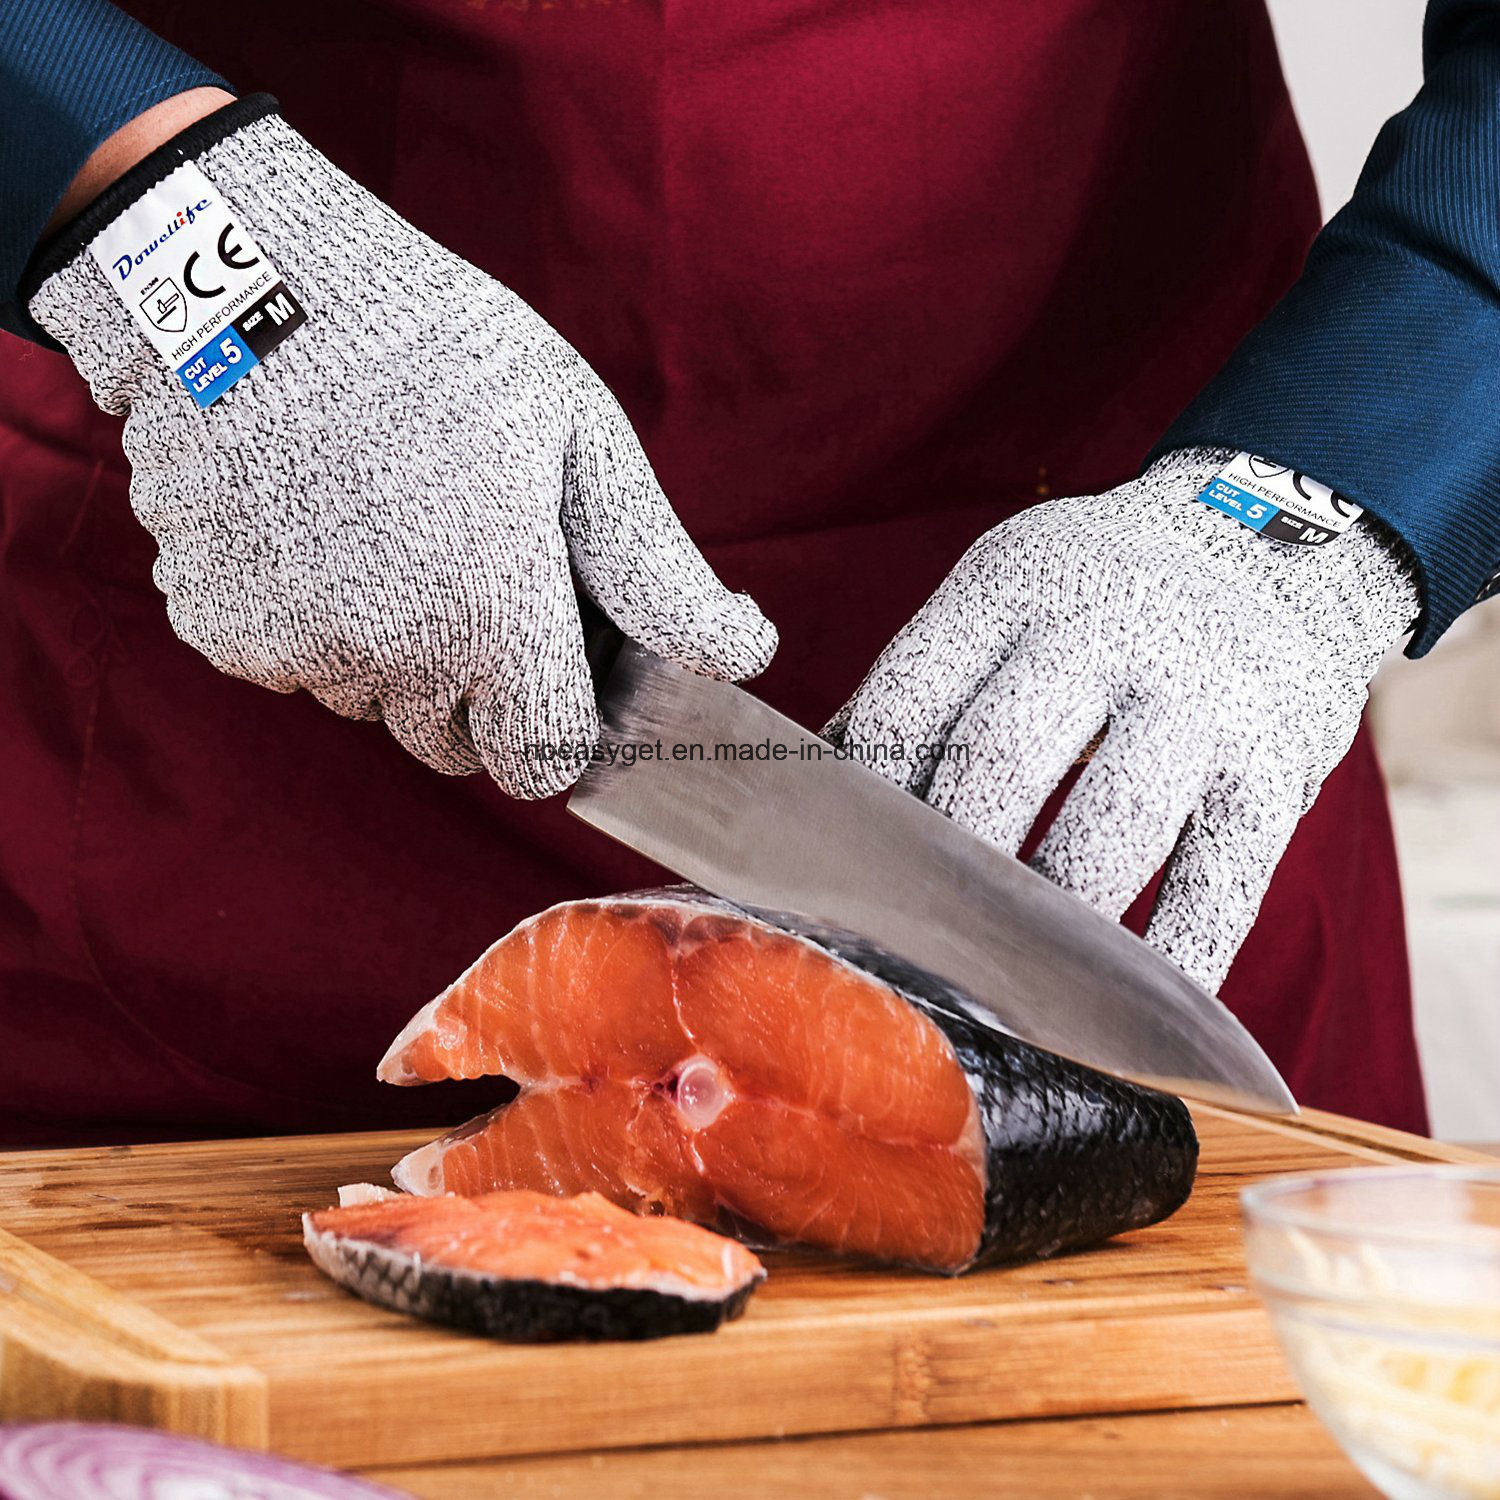 Cut Resistant Gloves Food Grade Level 5 Protection, Safety Kitchen Cuts Gloves for Oyster Shucking, Fish Fillet Processing, Mandolin Slicing, Meat Cutting